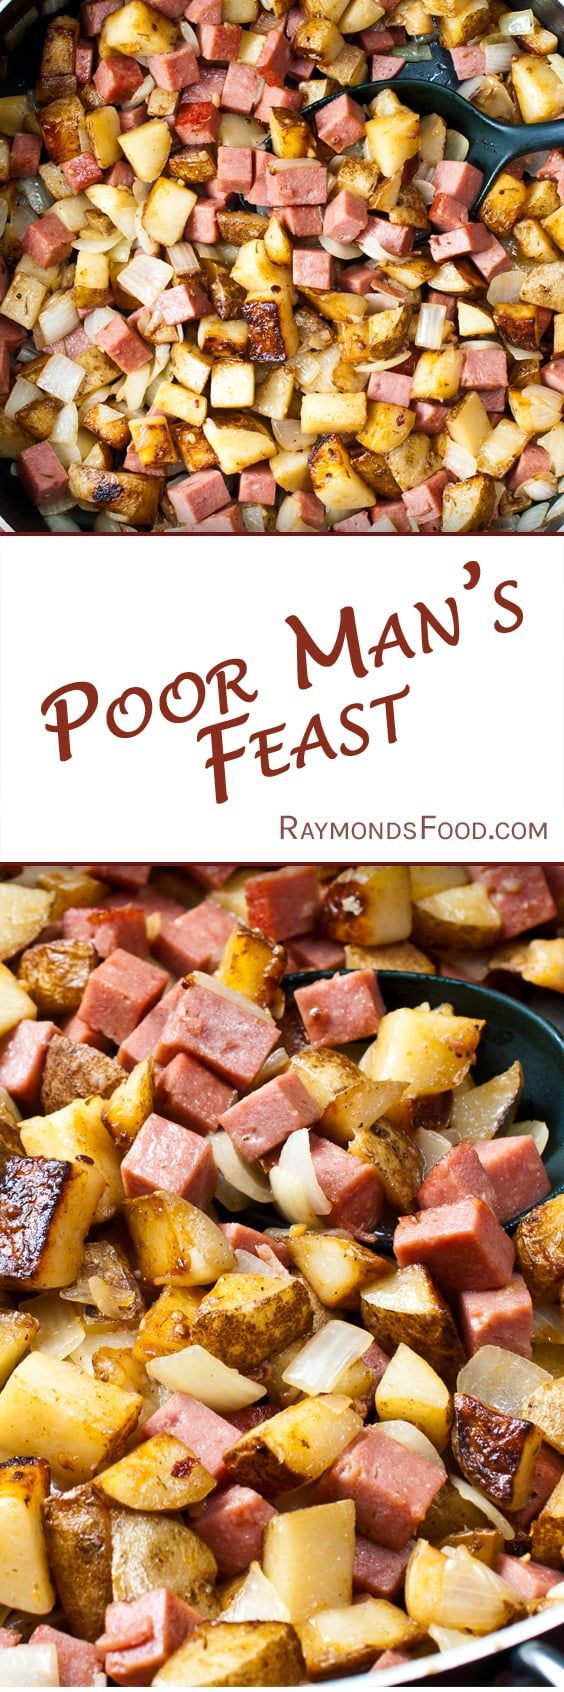 Poor Man's Feast Recipe by Raymond Selzer